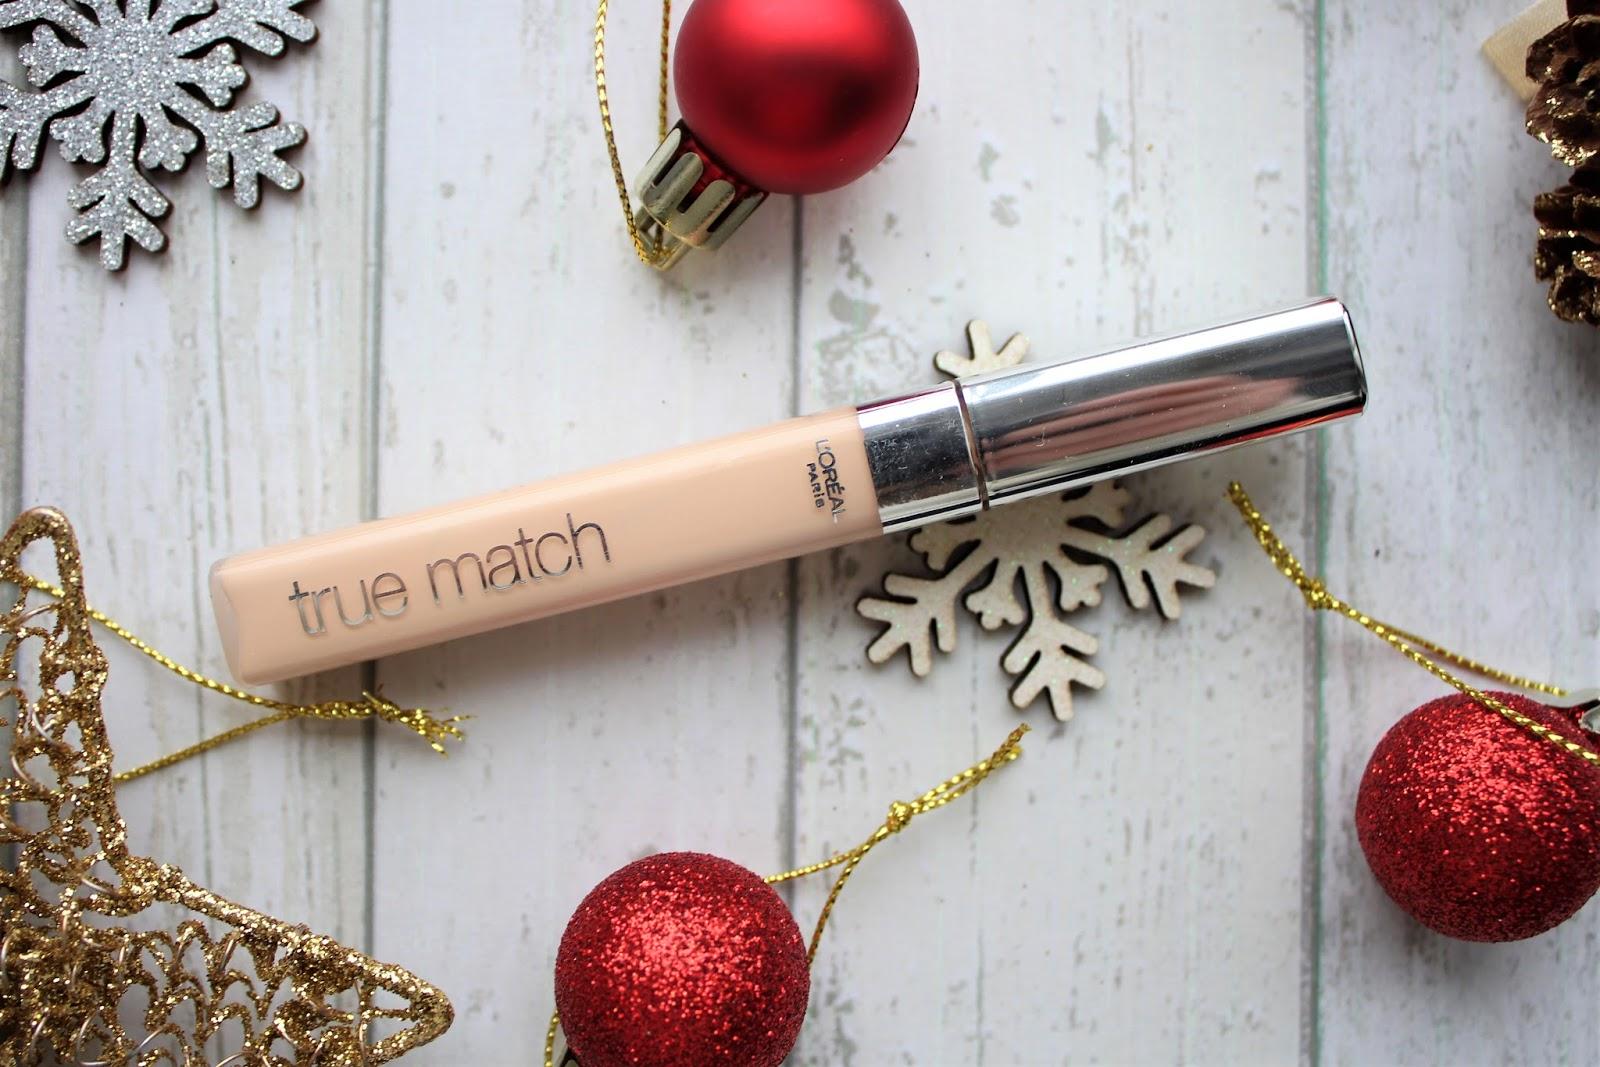 l'oreal true match concealer blog review